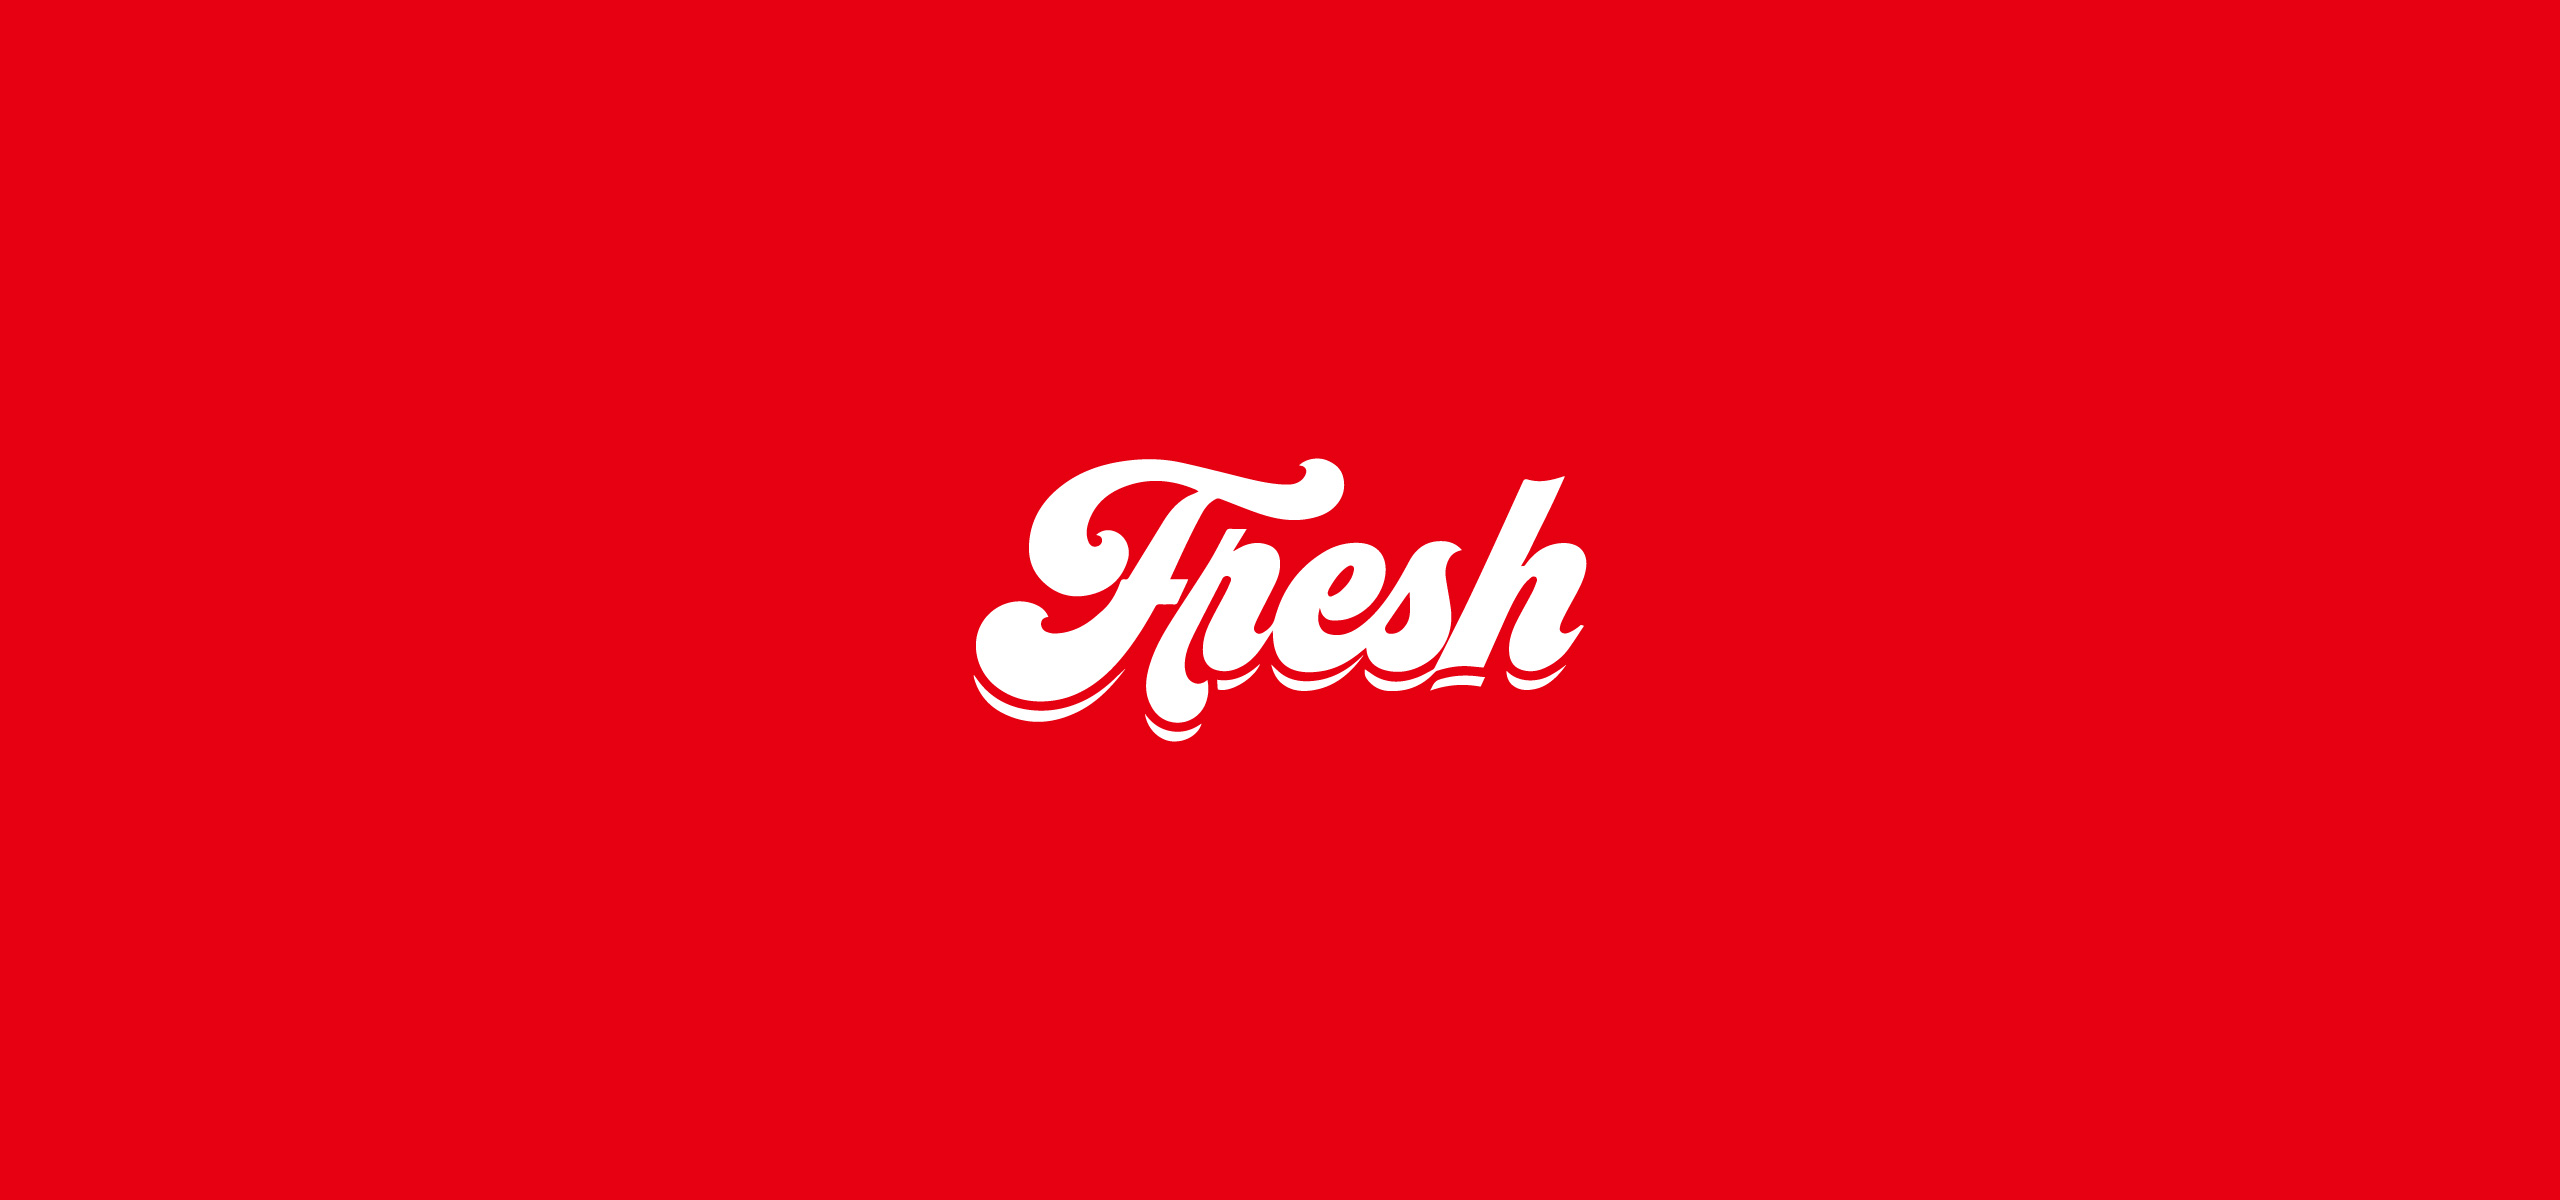 Fresh Organic Groceries Shopping in Your Doorstep Logo Lettering. Fresh Food Brand Logo.